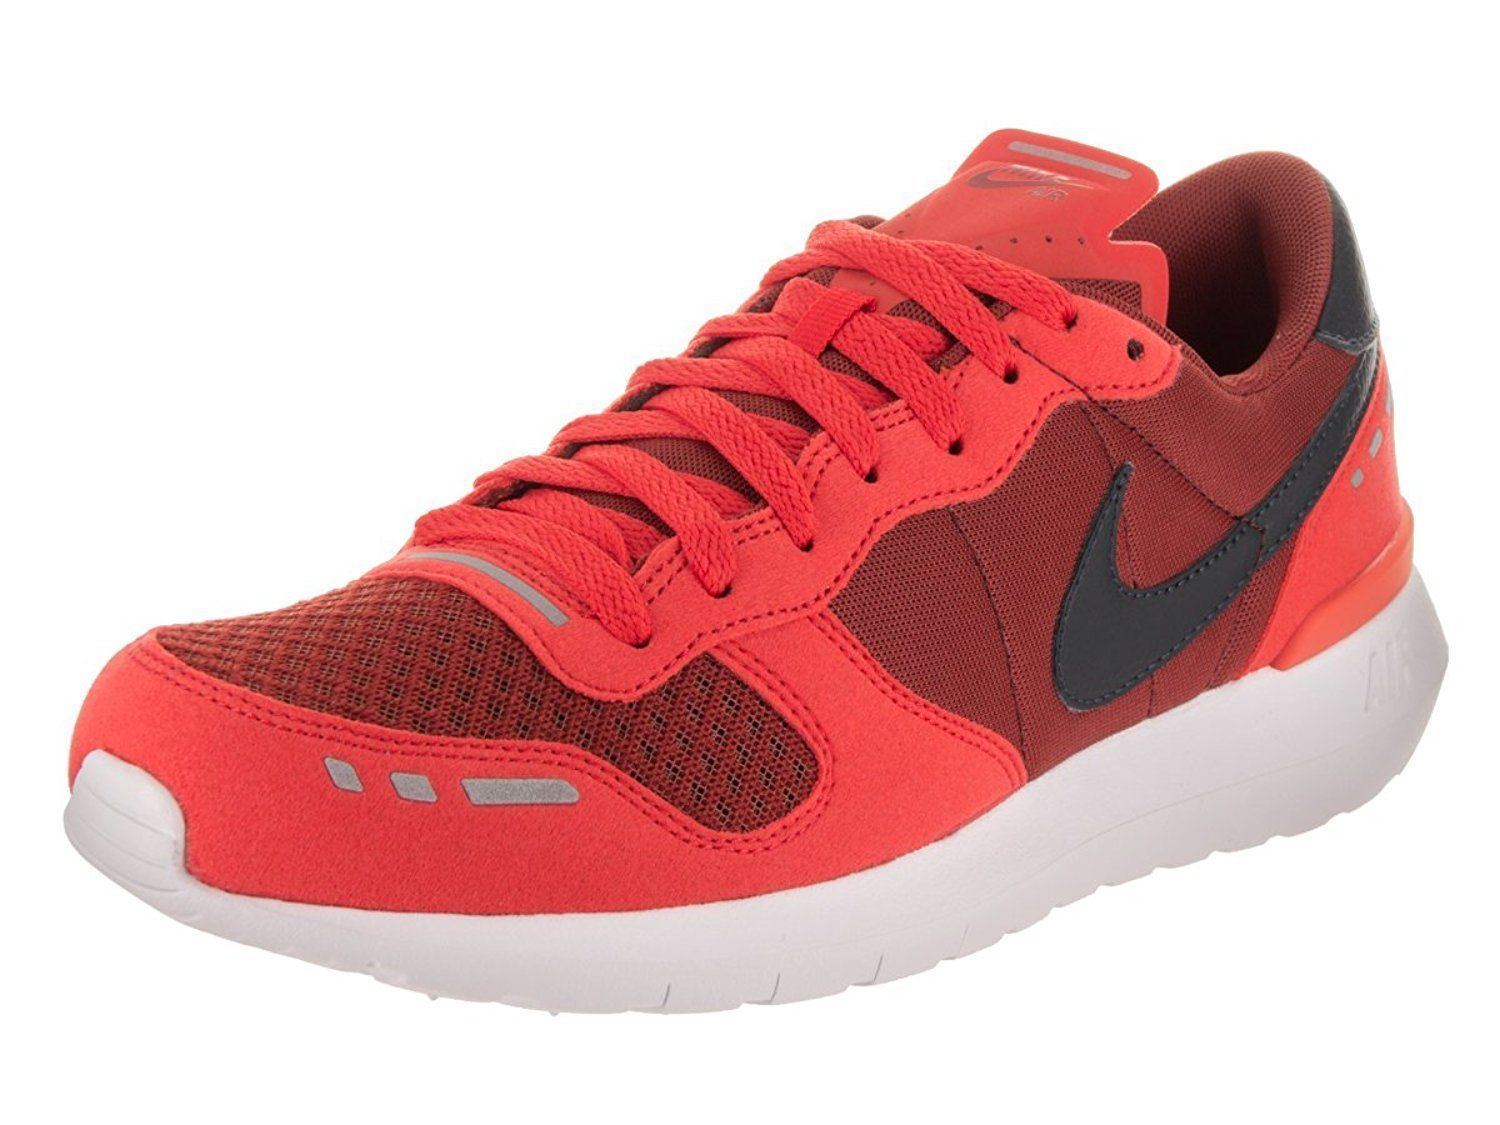 Men's Nike Air VRTX '17 Running Shoes, and 50 similar items